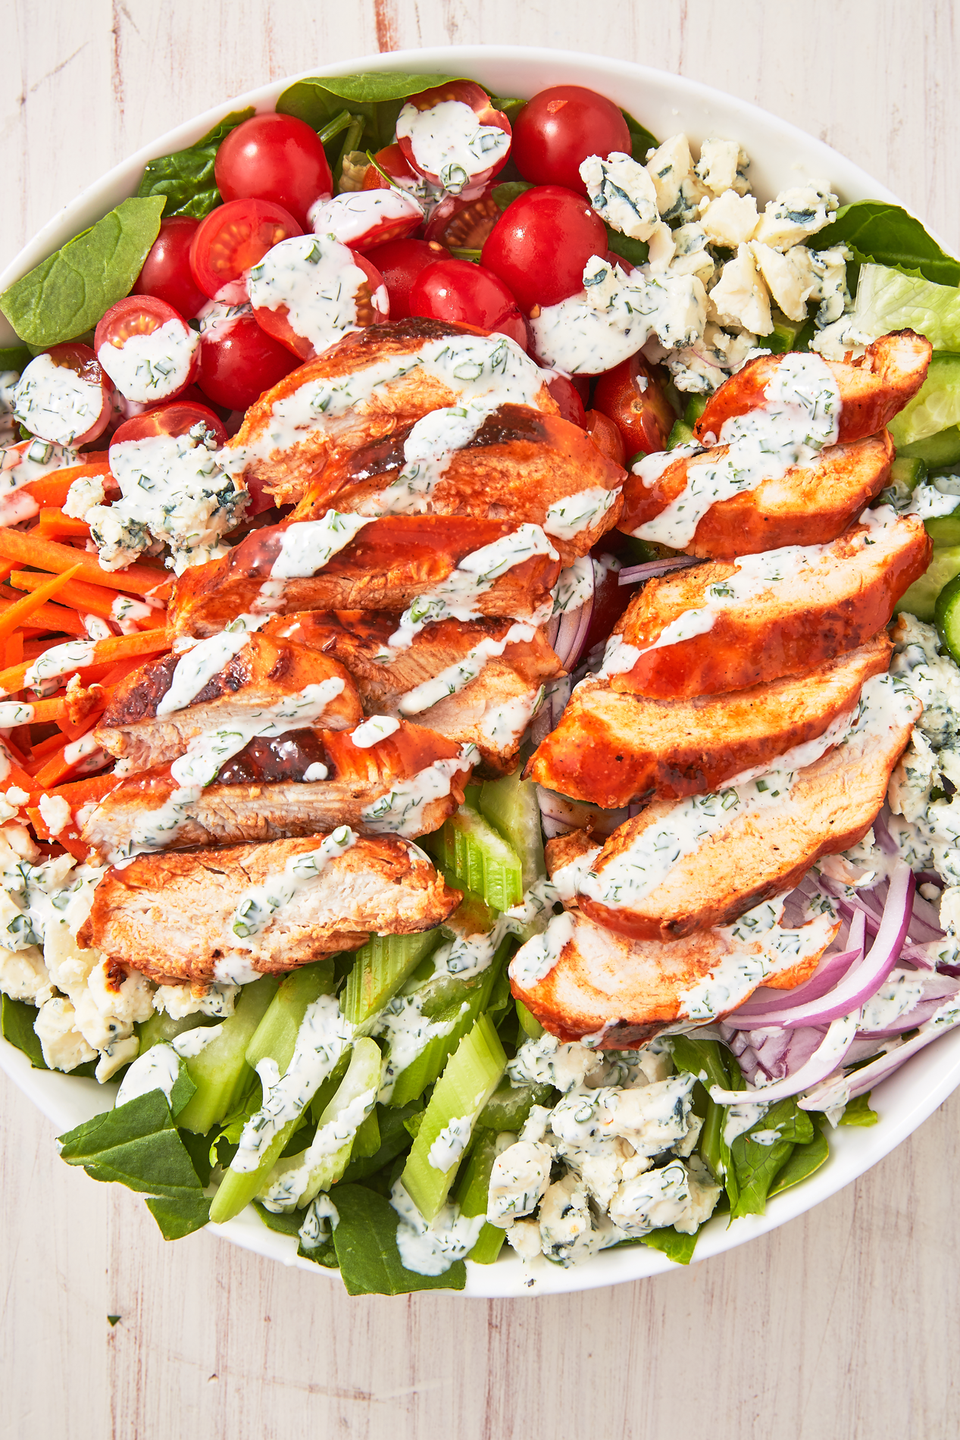 "<p>We've never been so in love with salad before. </p><p>Get the recipe from <a href=""https://www.delish.com/cooking/recipe-ideas/a27925036/easy-buffalo-chicken-salad-recipe/"" rel=""nofollow noopener"" target=""_blank"" data-ylk=""slk:Delish"" class=""link rapid-noclick-resp"">Delish</a>. </p>"